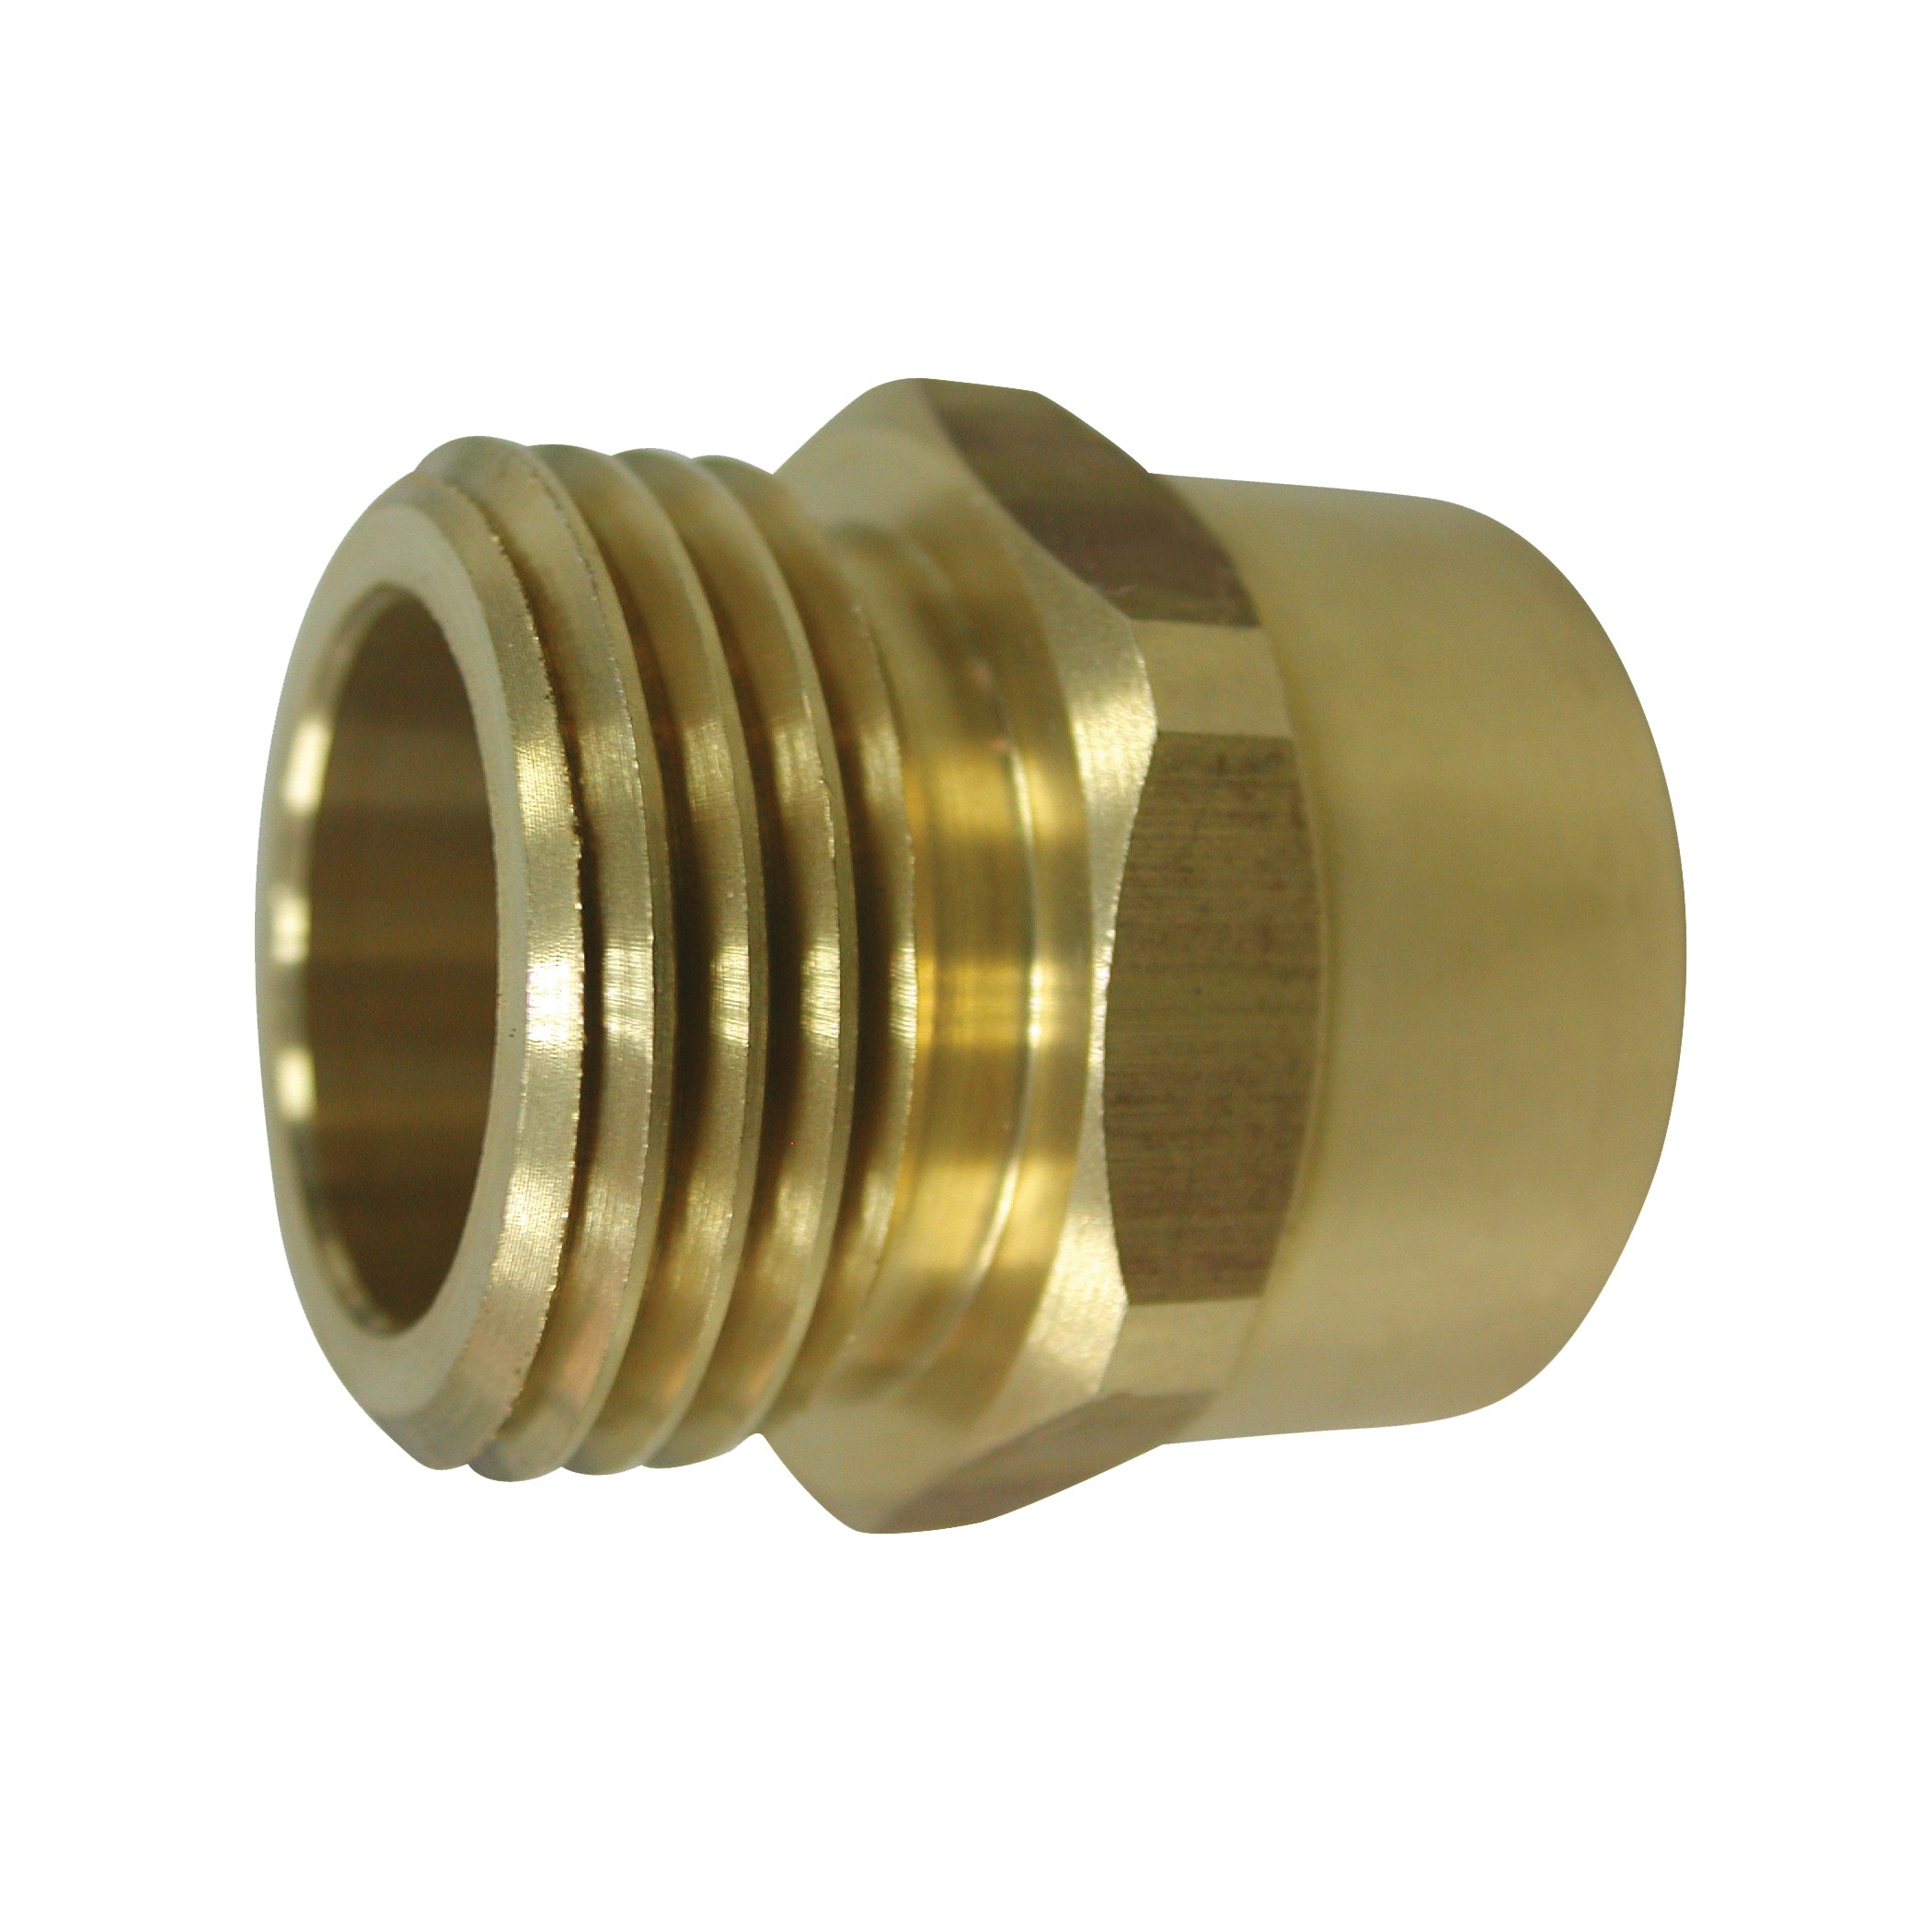 Picture of Landscapers Select PMB-468-3L Hose to Pipe Connector, 3/4 x 3/4, MHT x FIP, Brass, Brass, For: Garden Hose